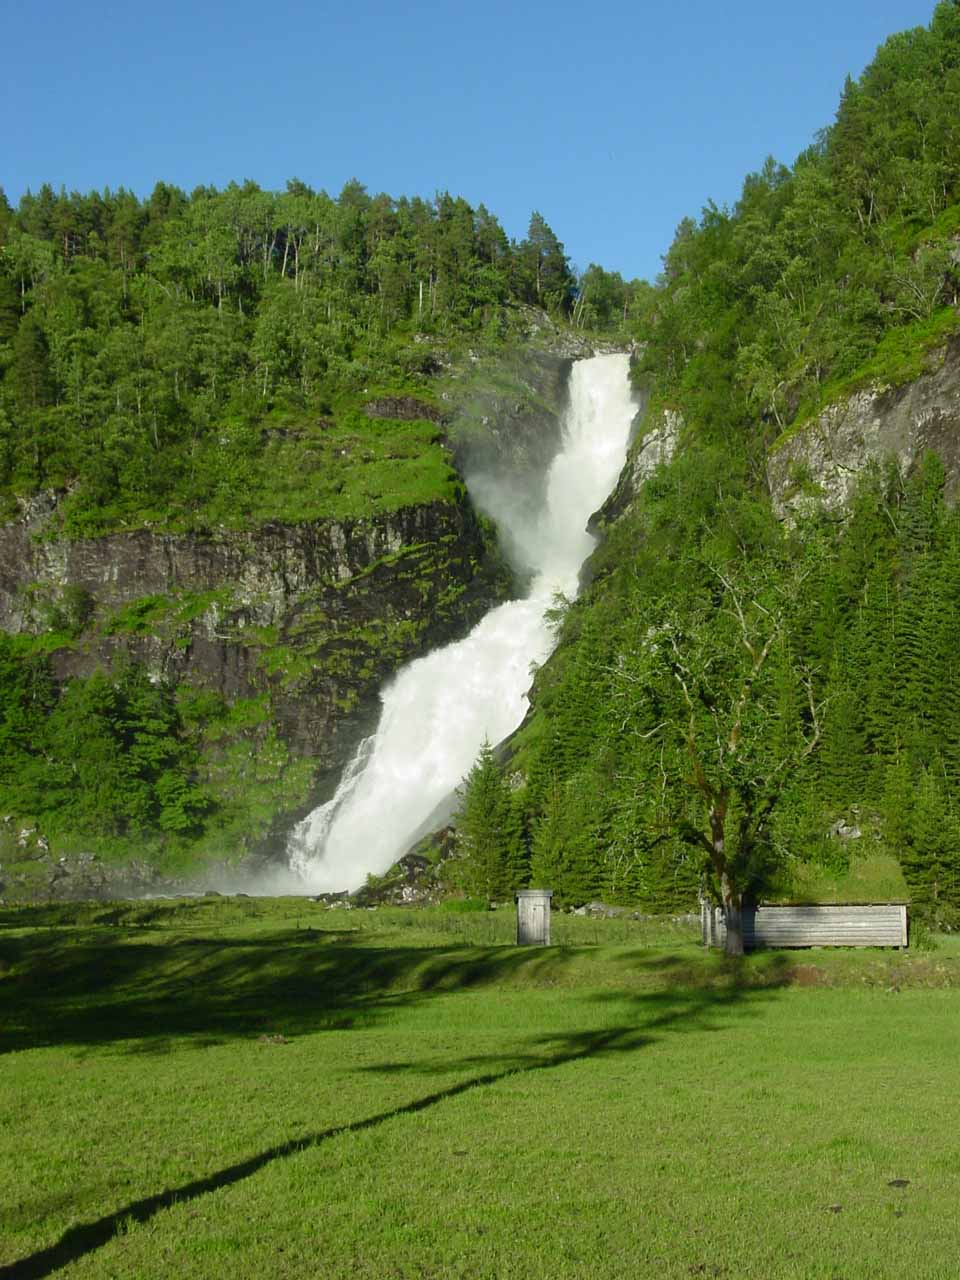 We returned to Huldrefossen later in the afternoon or evening when the lighting was much better